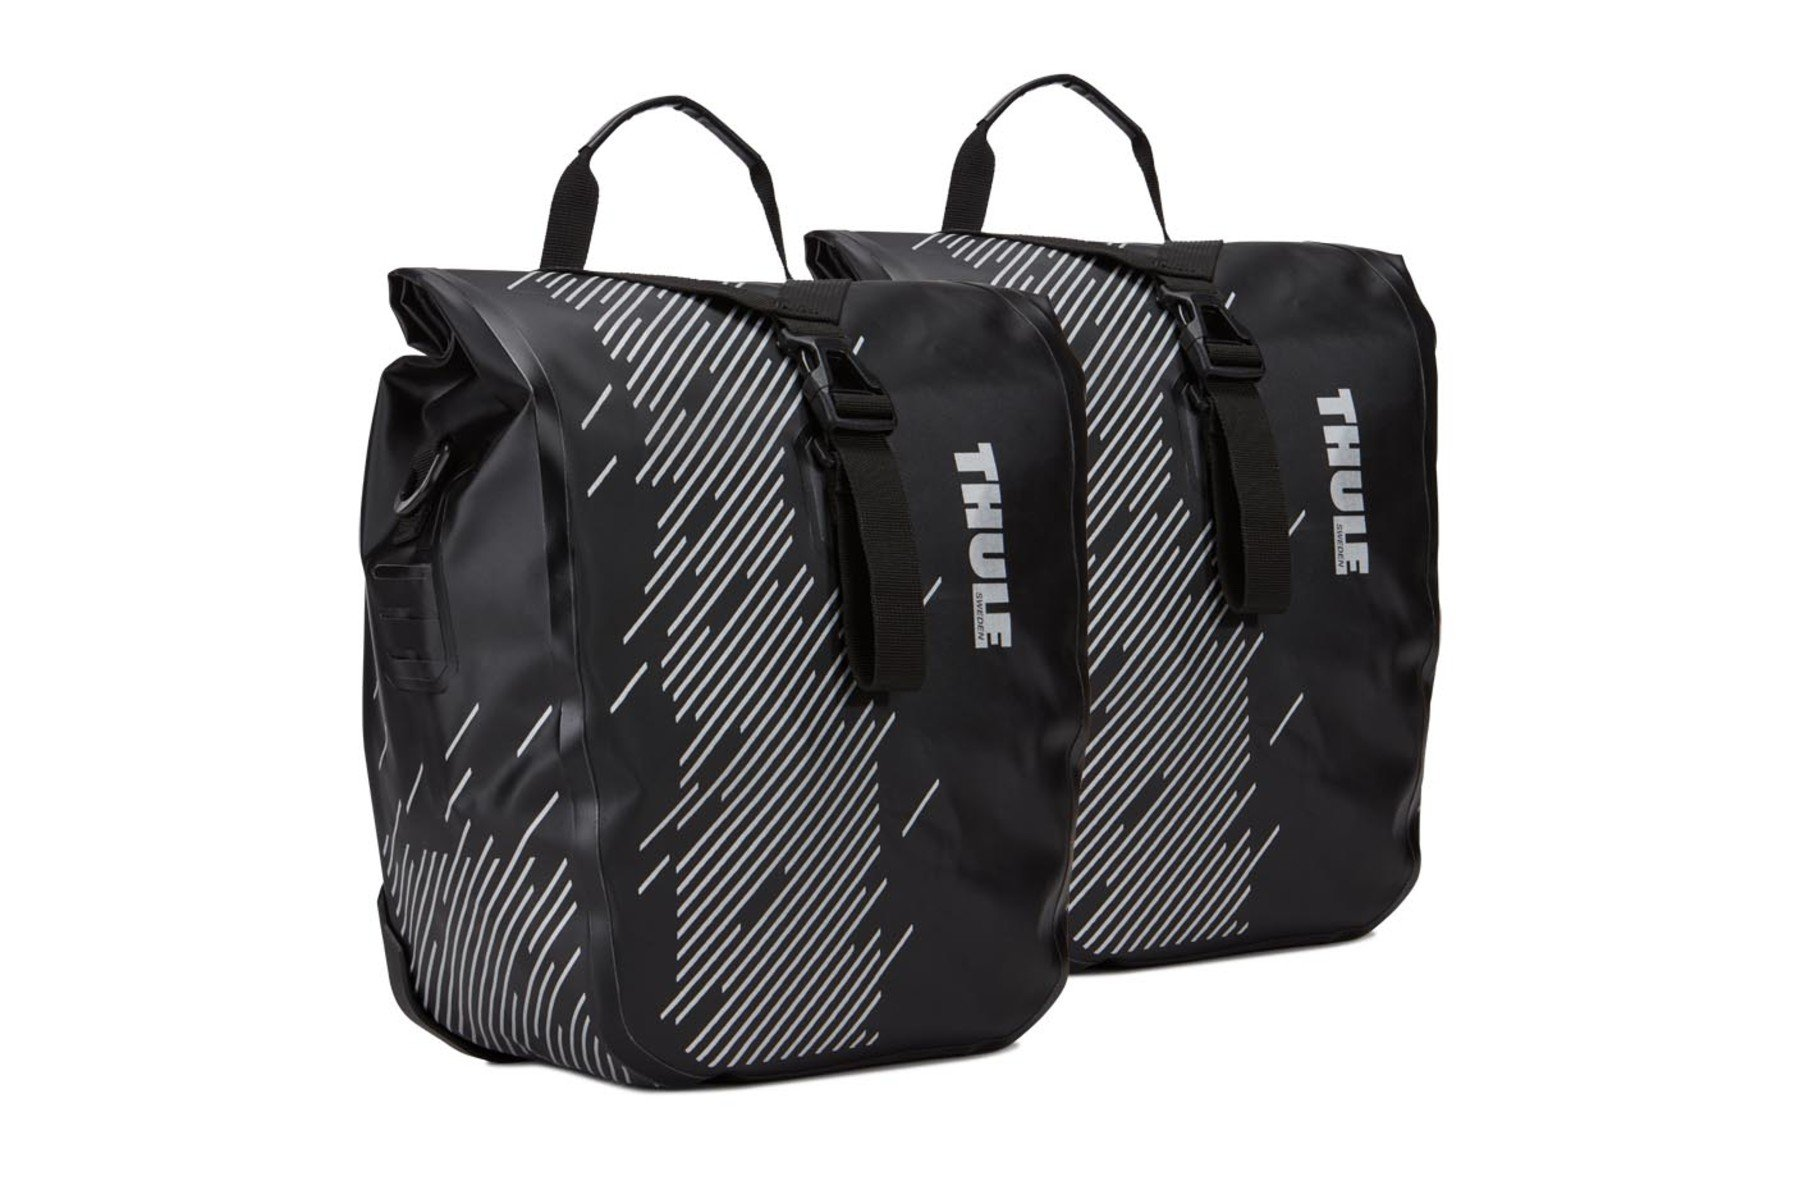 THULE_SHIELD_PANNIER_S_01